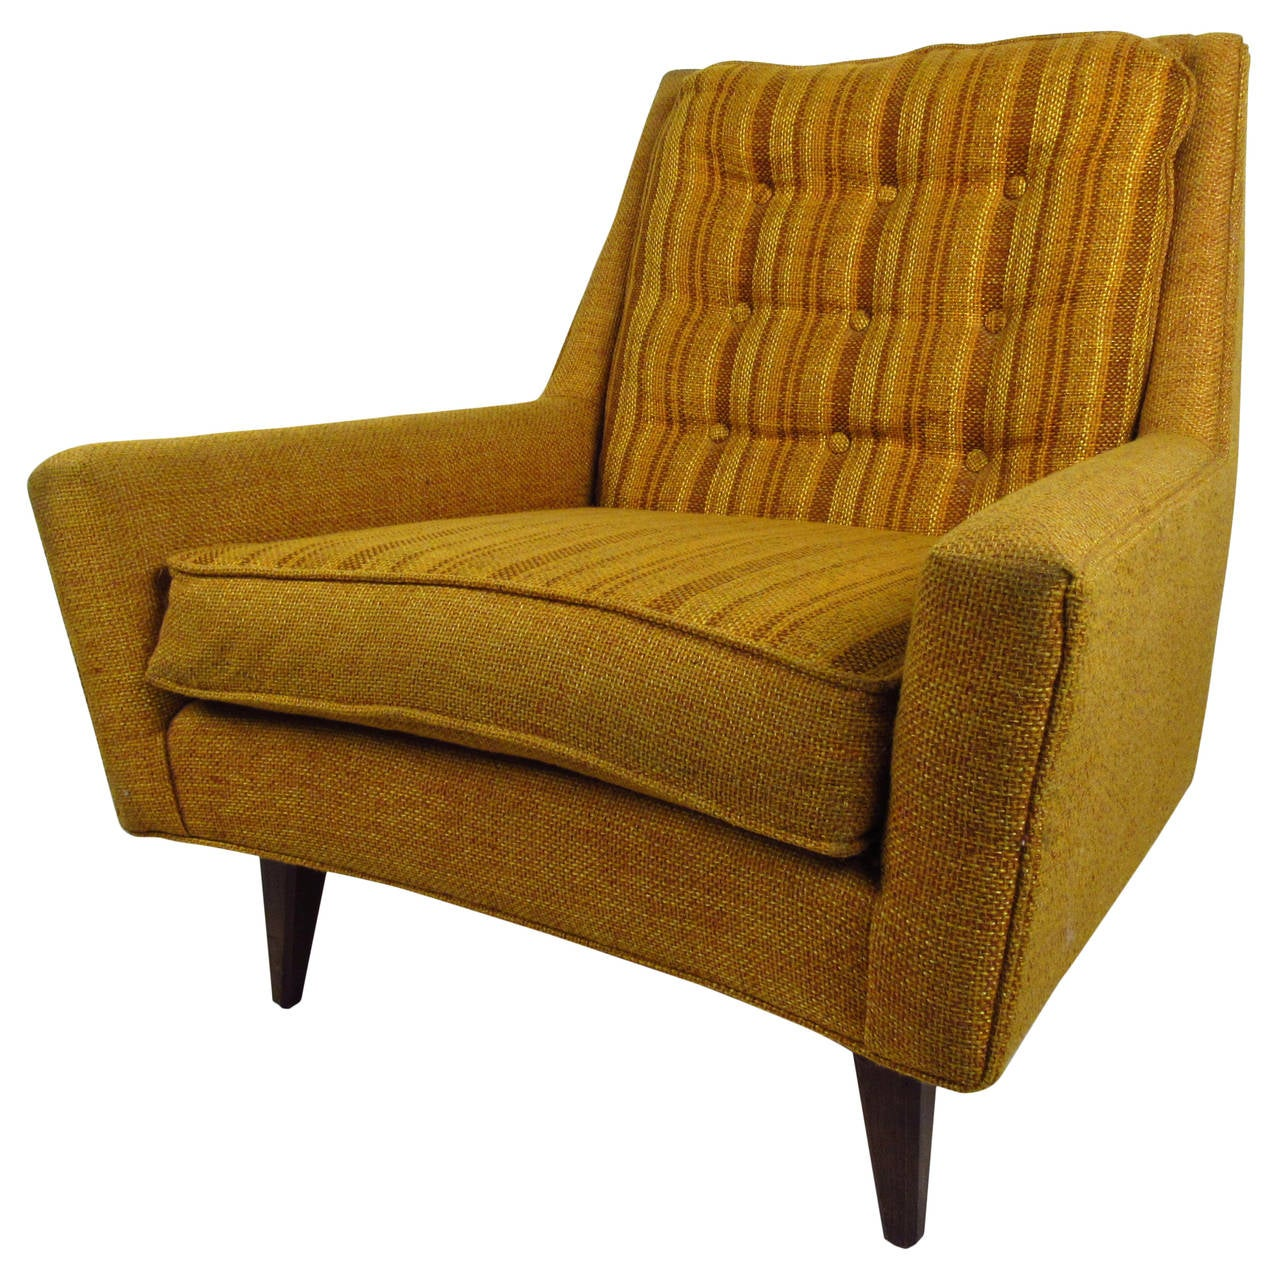 Mid century modern upholstered lounge chair with tufted Mid century chairs